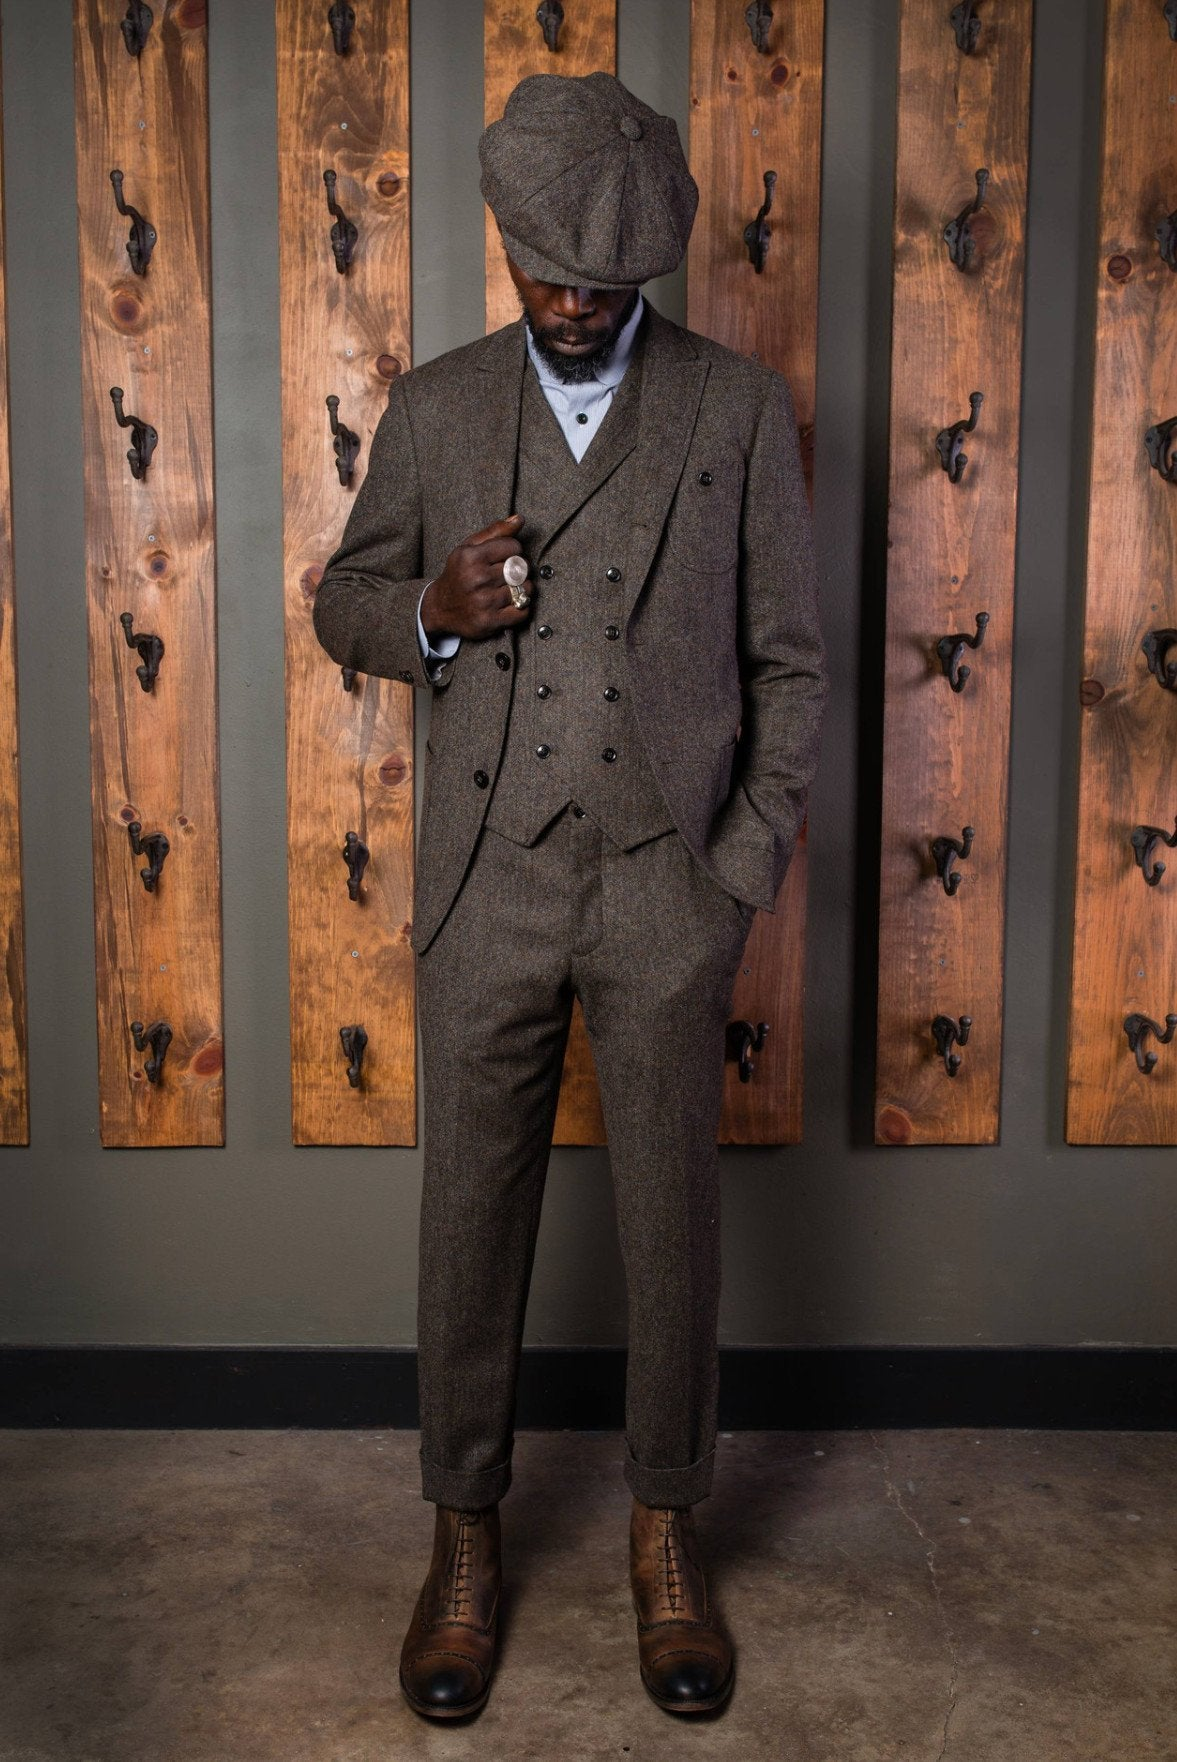 Derby Tweed Suit-Bykowski Tailor & Garb English Tweed sack coat peaky blinders prohibition semi peak lapel tailored fit slim fit Wool heritage clothing Gatsby Edwardian Dapper Classic Casual 1930's 1920's 1910's vintage inspired tweed Rustic Made in USA Handcrafted